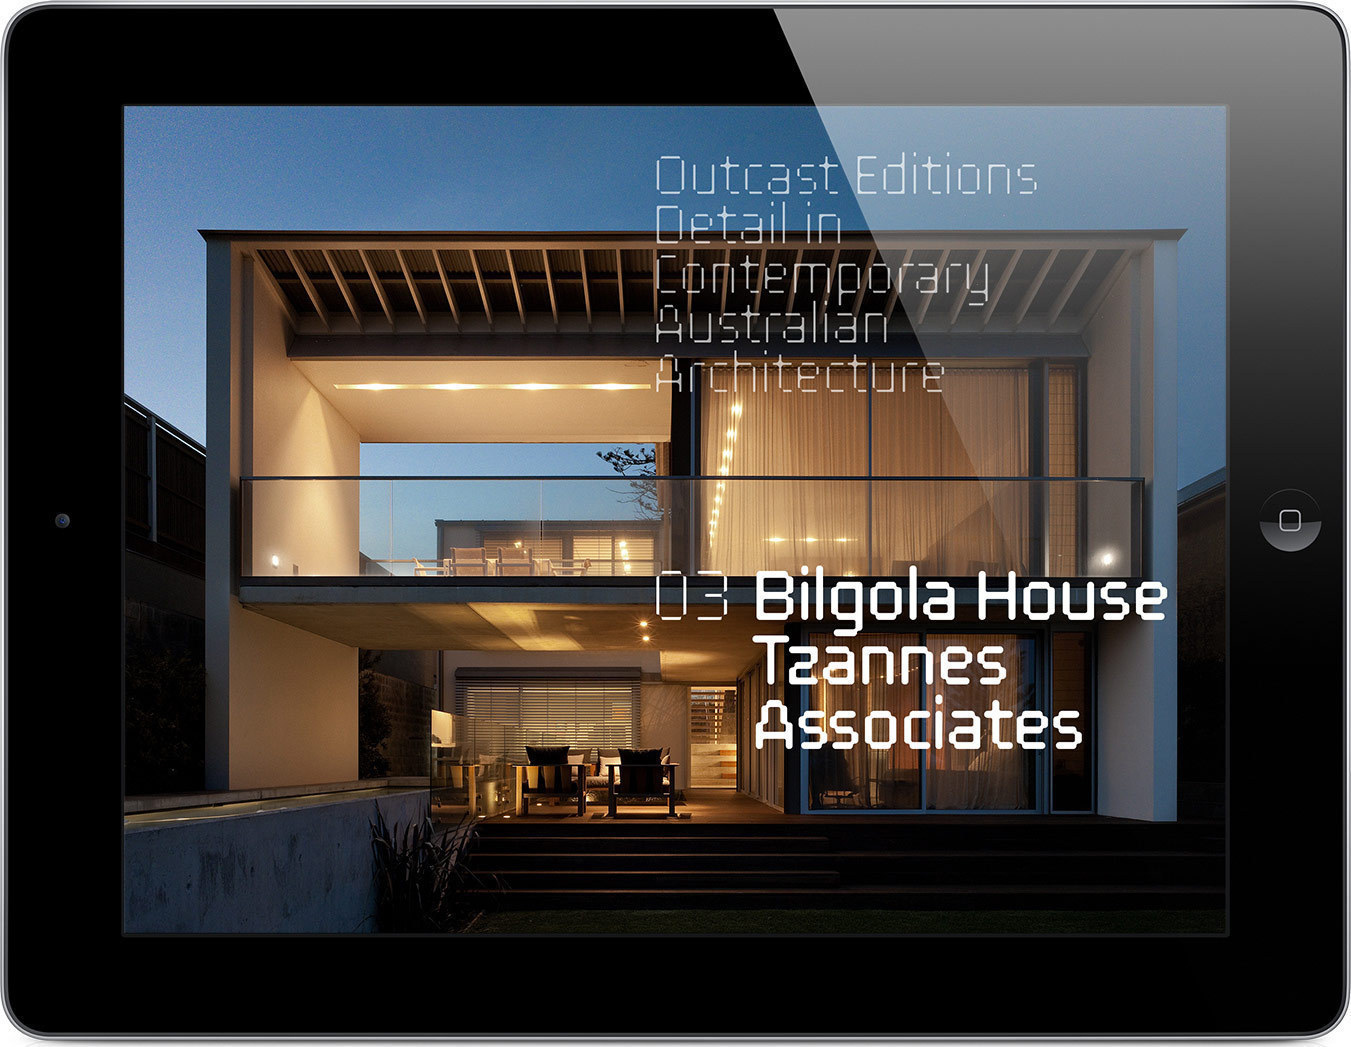 "<a href=""http://www.outcasteditions.com/"">Outcast Editions interactive digital books</a> 